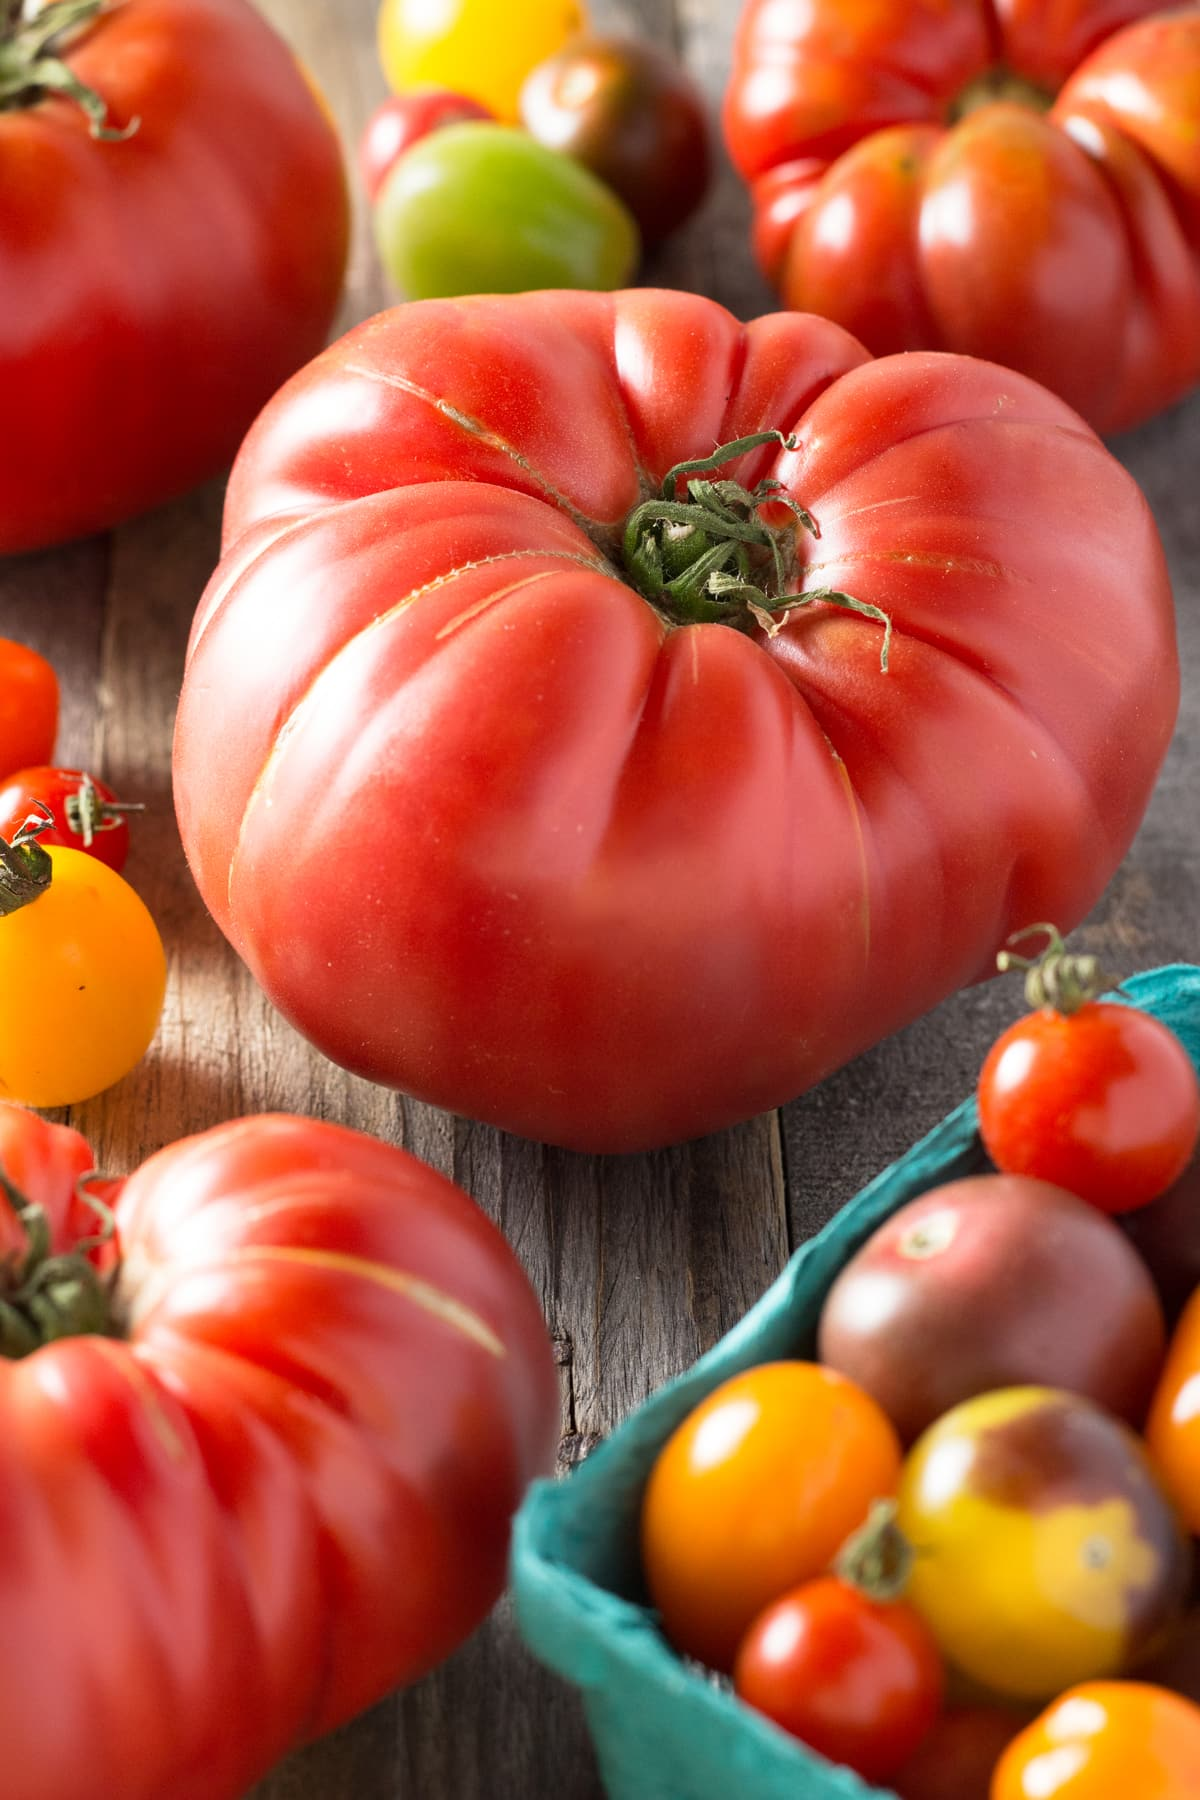 Angled view of an arrangement of large and small heirloom tomatoes on a wood surface.